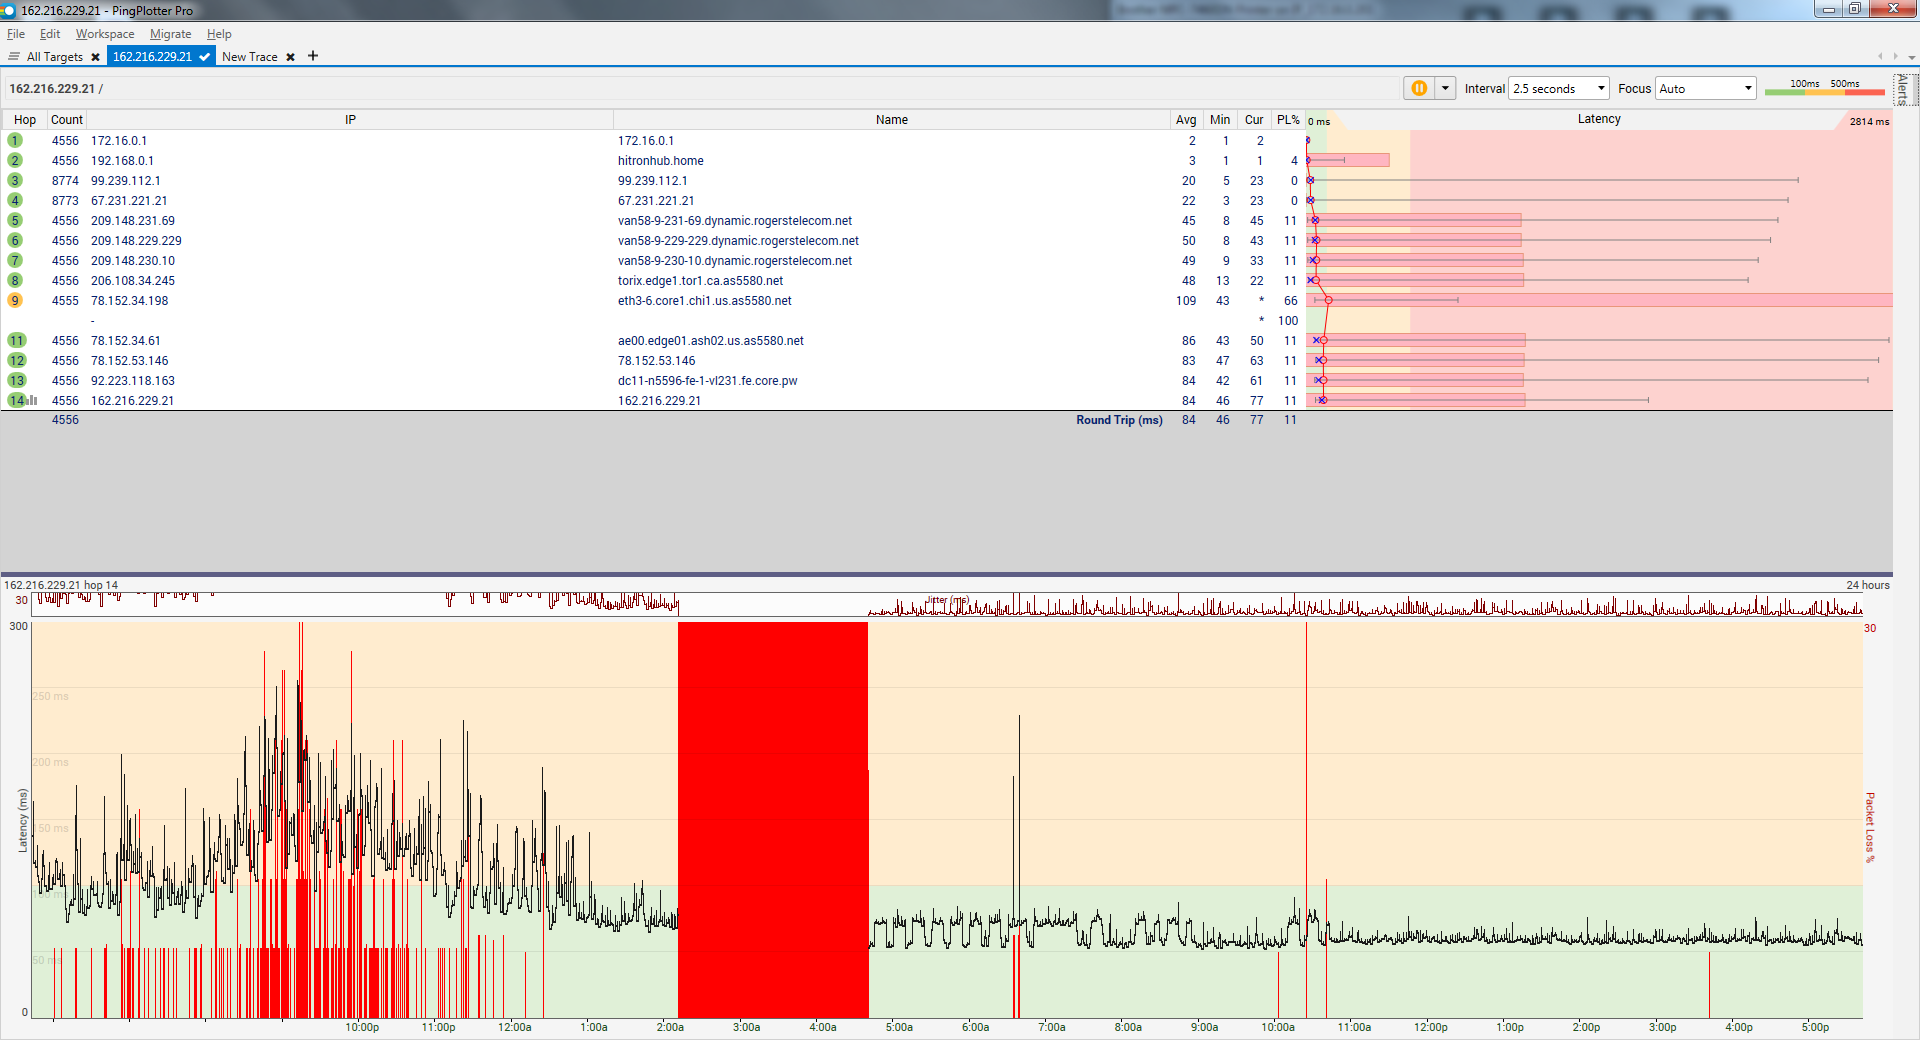 Solved: Latency Issues with Hitron CGN3 - Page 5 - Rogers